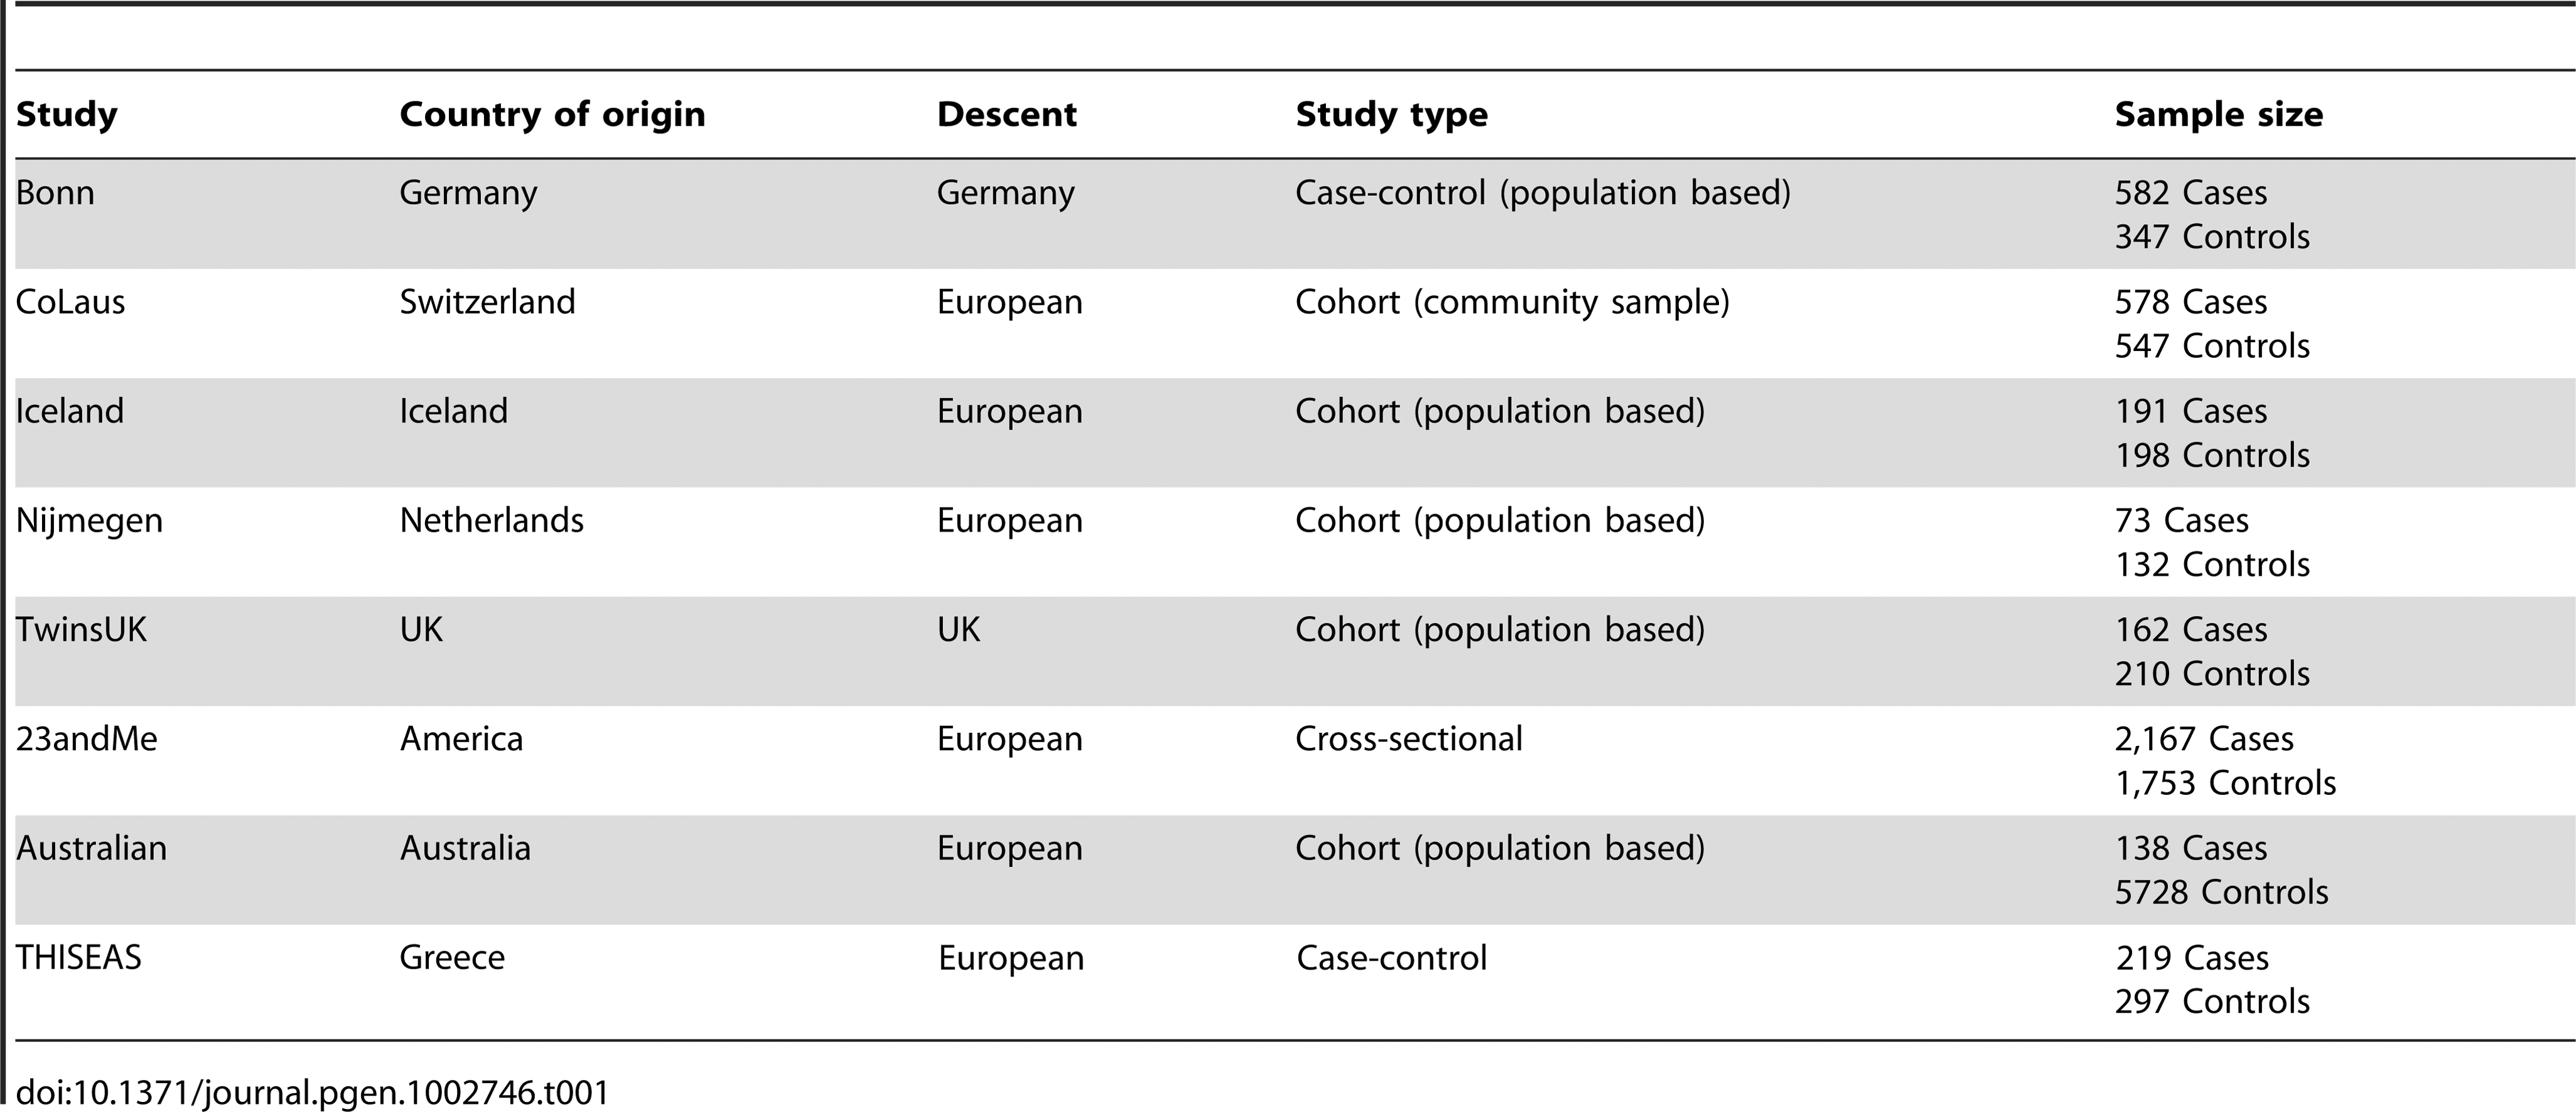 Demographic properties of the study subjects in participant studies.